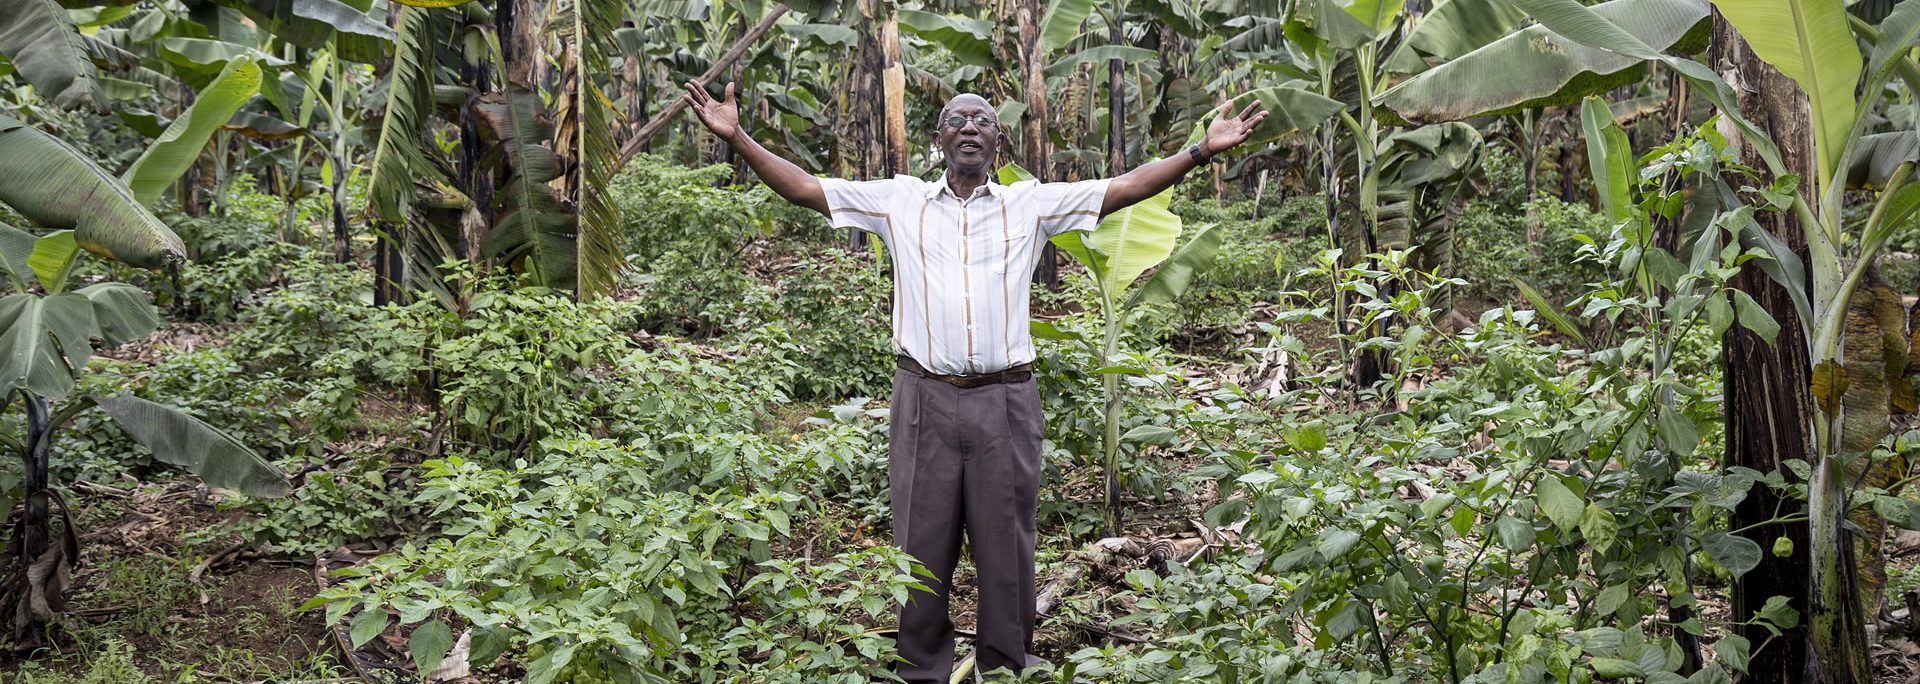 Happy farmer in his productive farm due to bioslurry usage